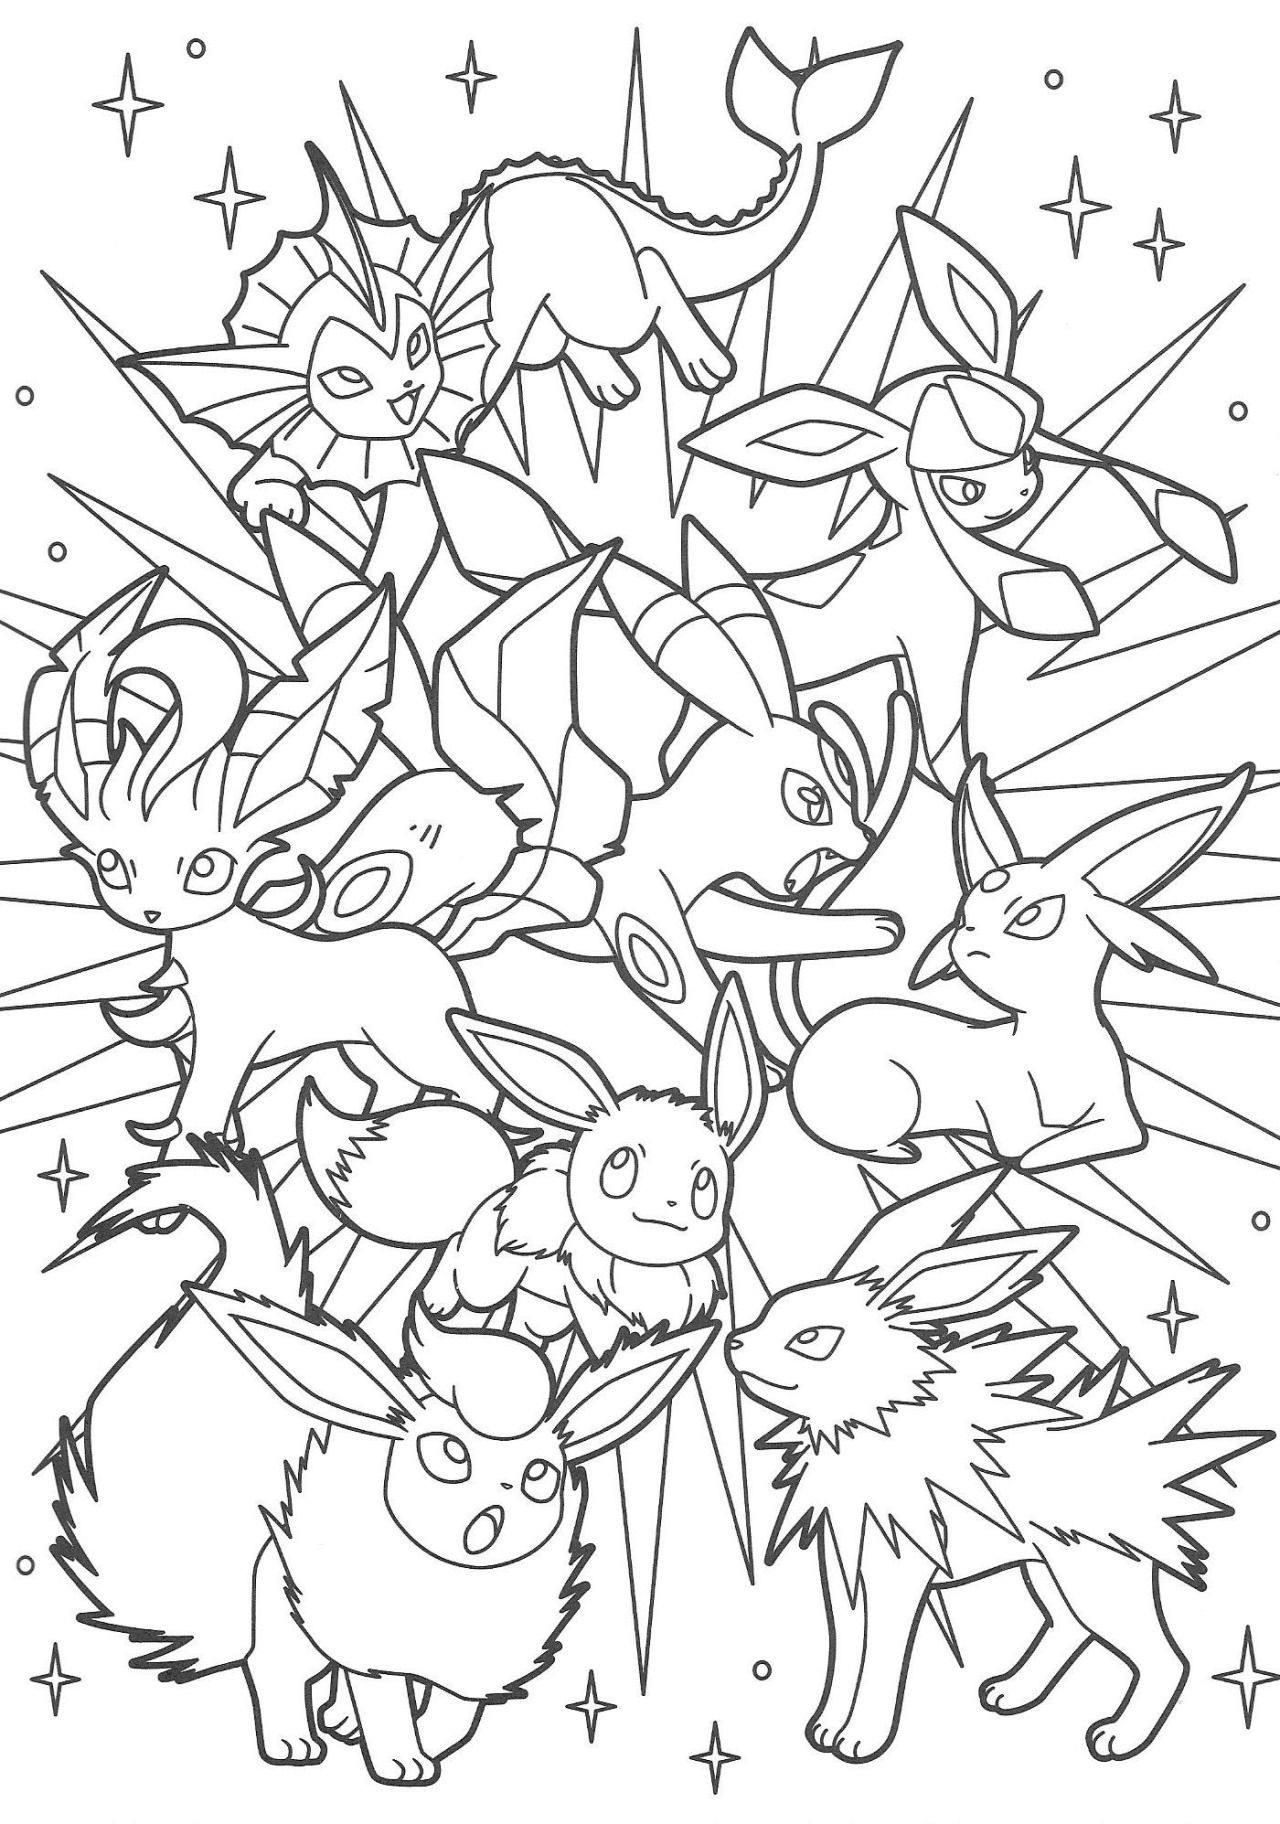 Pokemon Scans From Pacificpikachu S Collection Pokemon Coloring